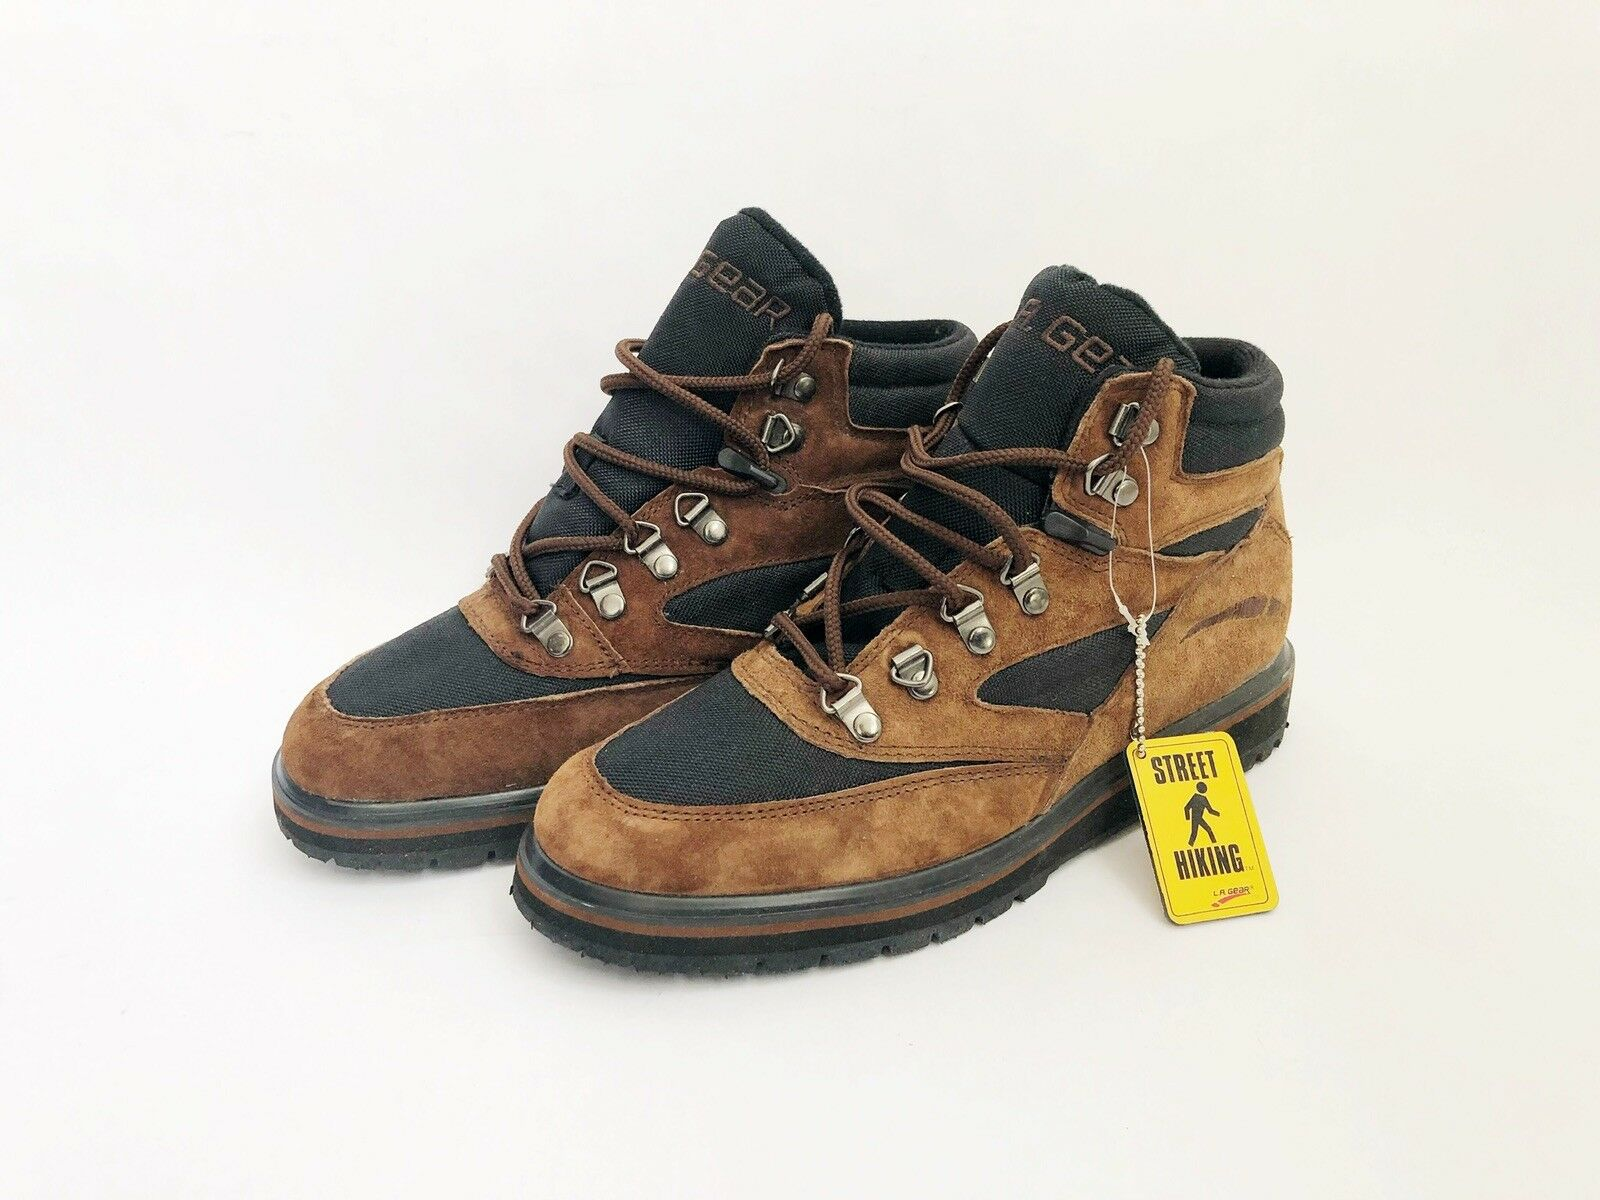 Vintage LA gear canyon cruiser high boots sneakers mens size 8 deadstock NIB 90s